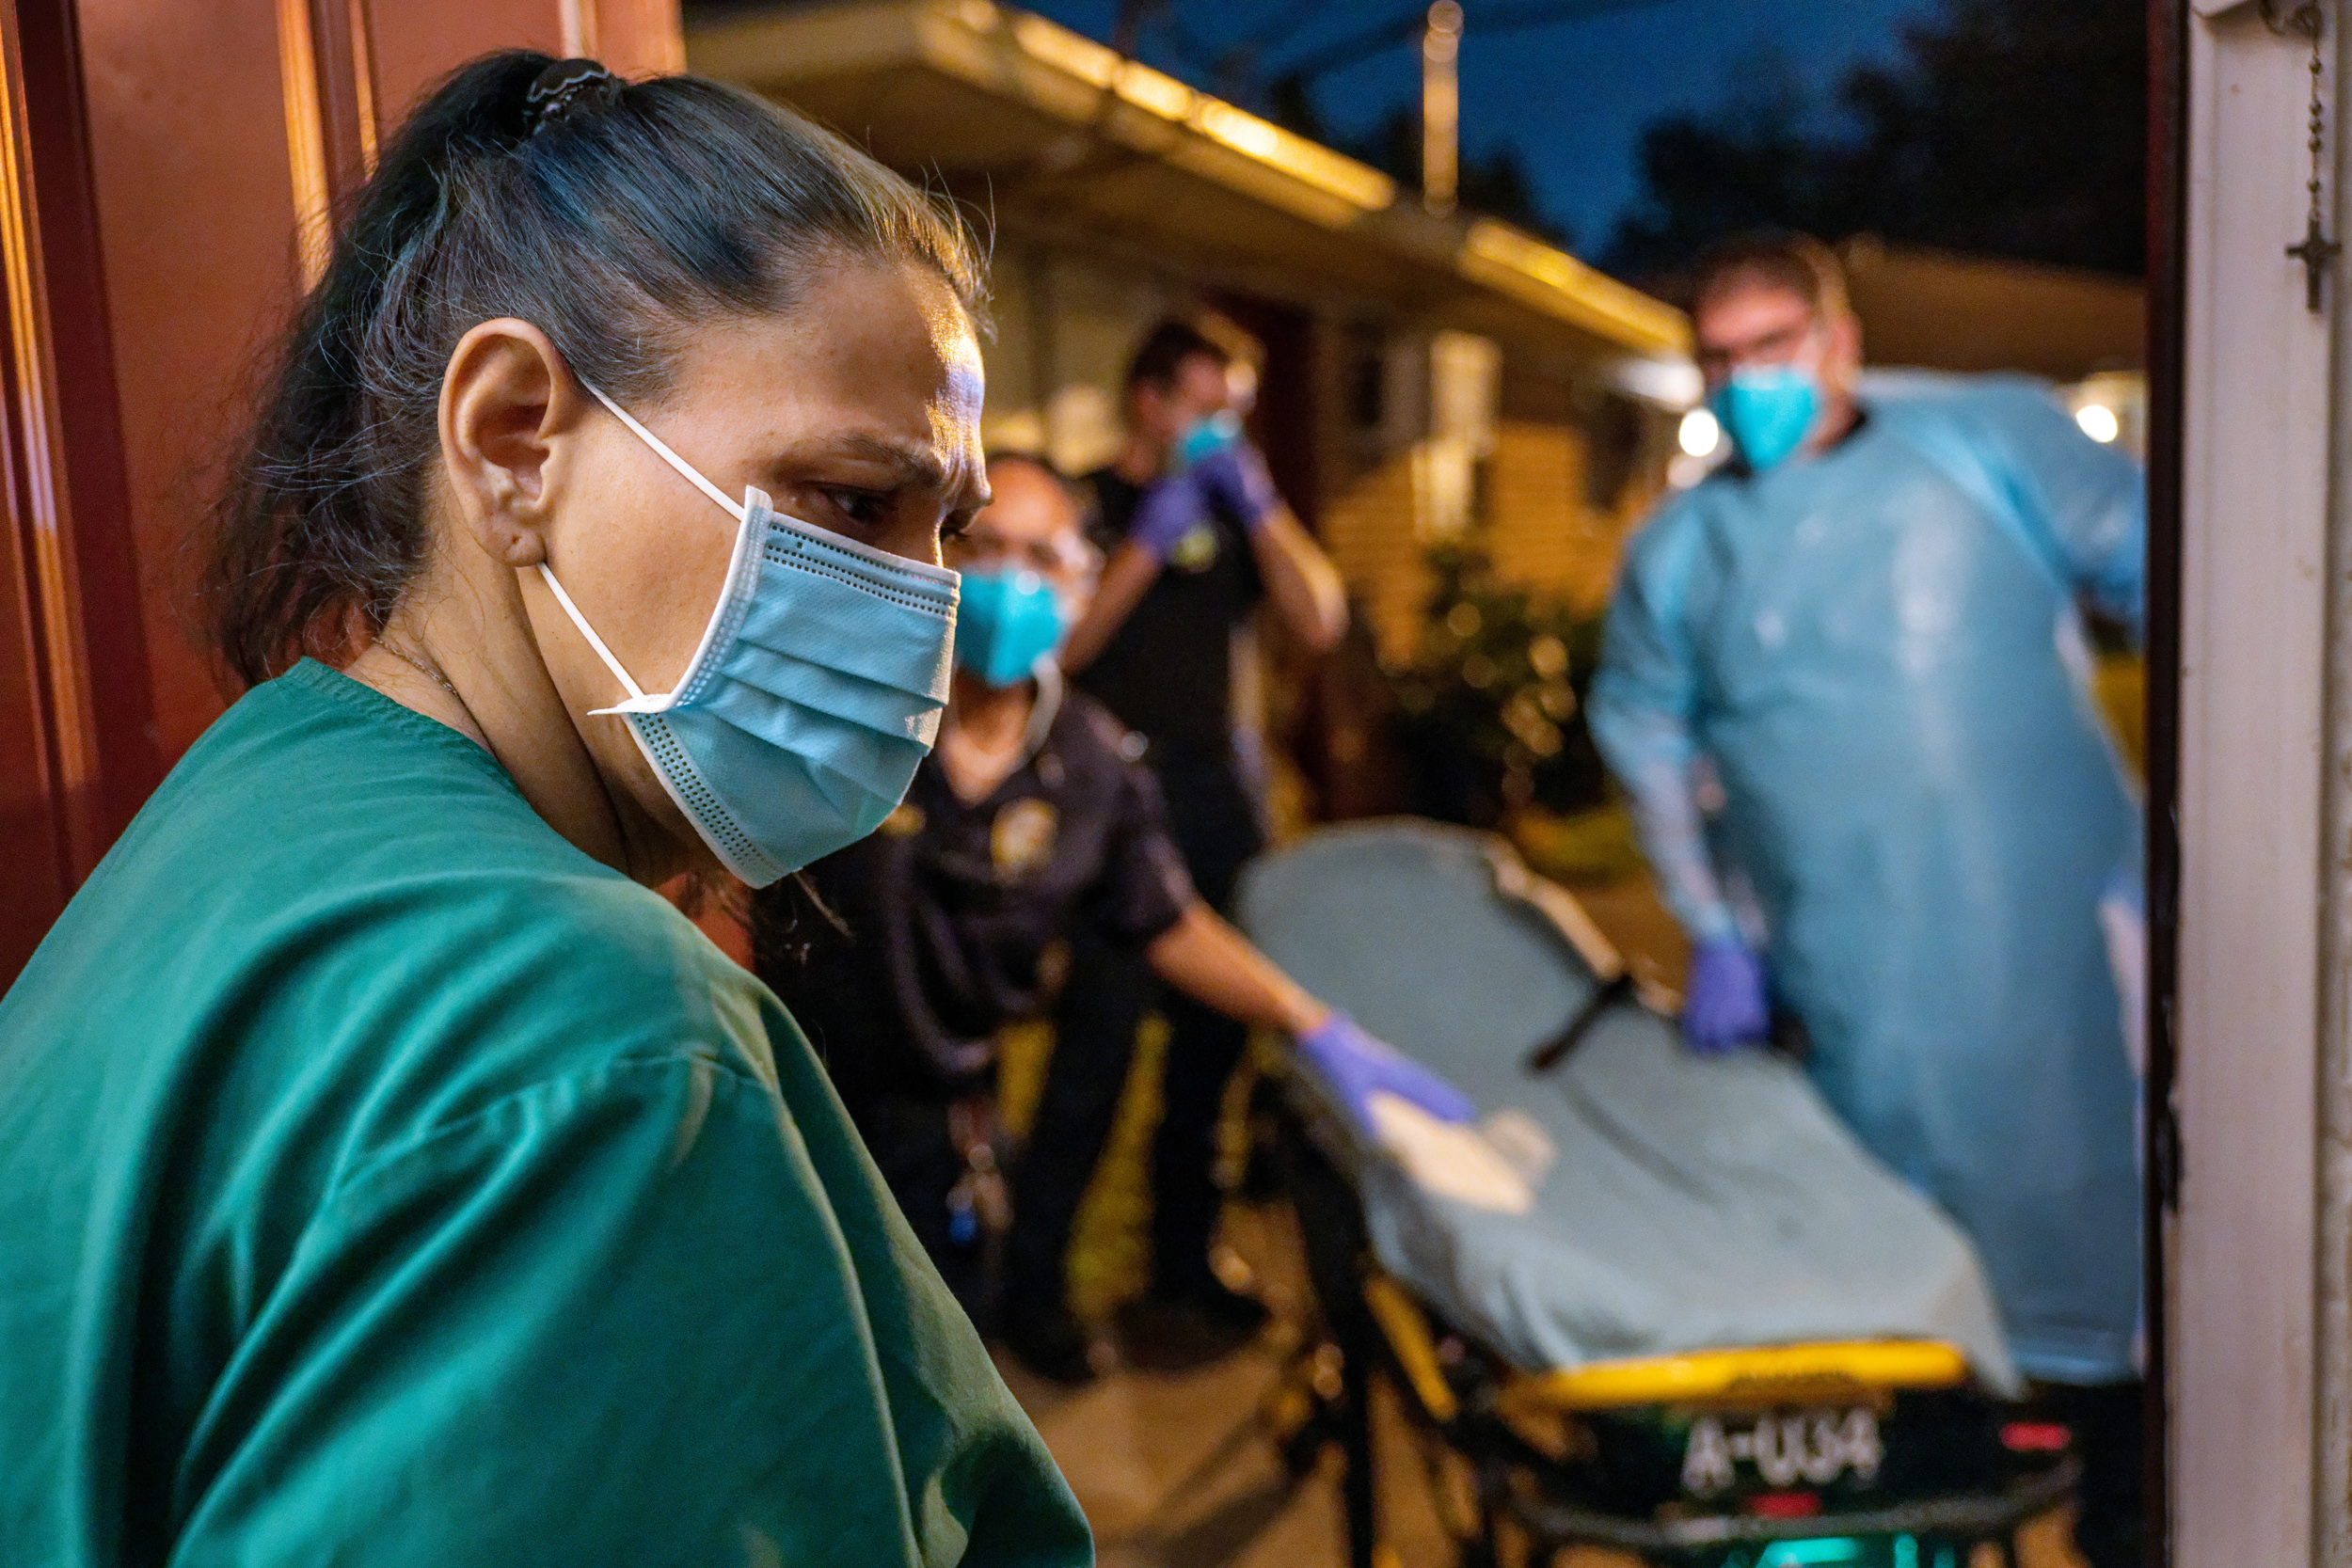 Covid-19 hospitalizations top 100,000 as delta variant surges